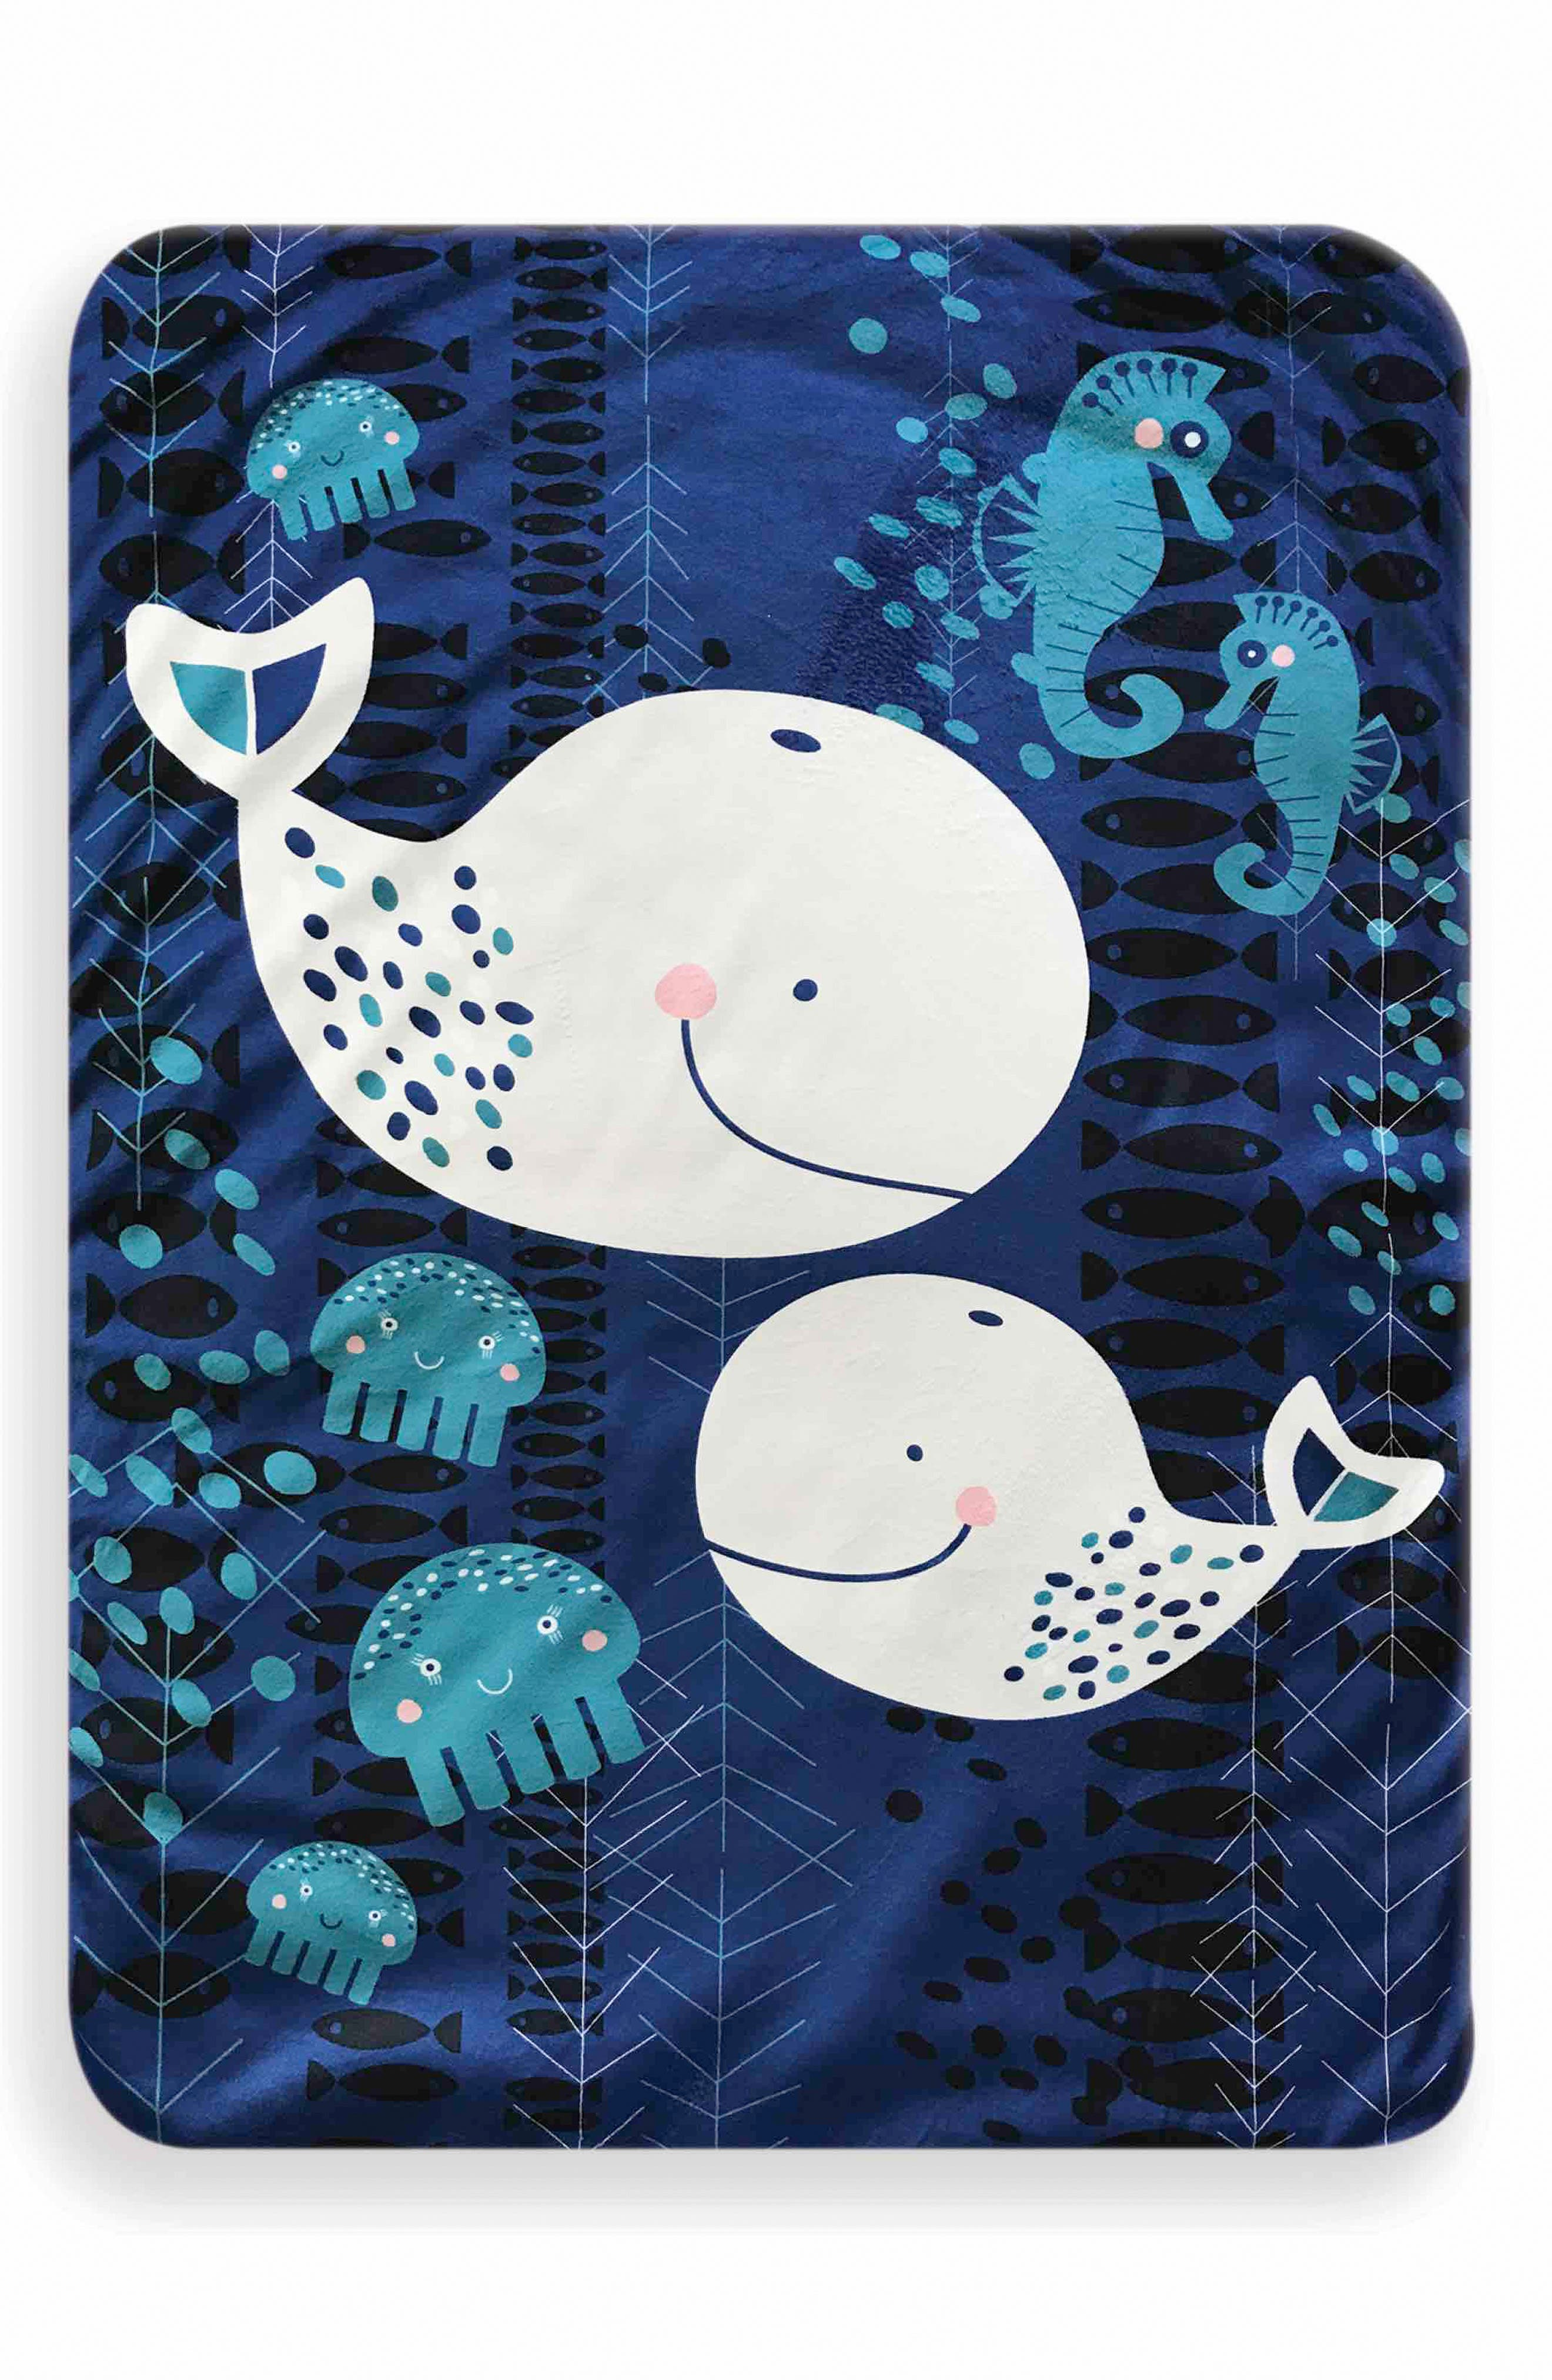 Whale of a Time Play Mat,                             Main thumbnail 1, color,                             INDIGO/ GREY/ WHITE